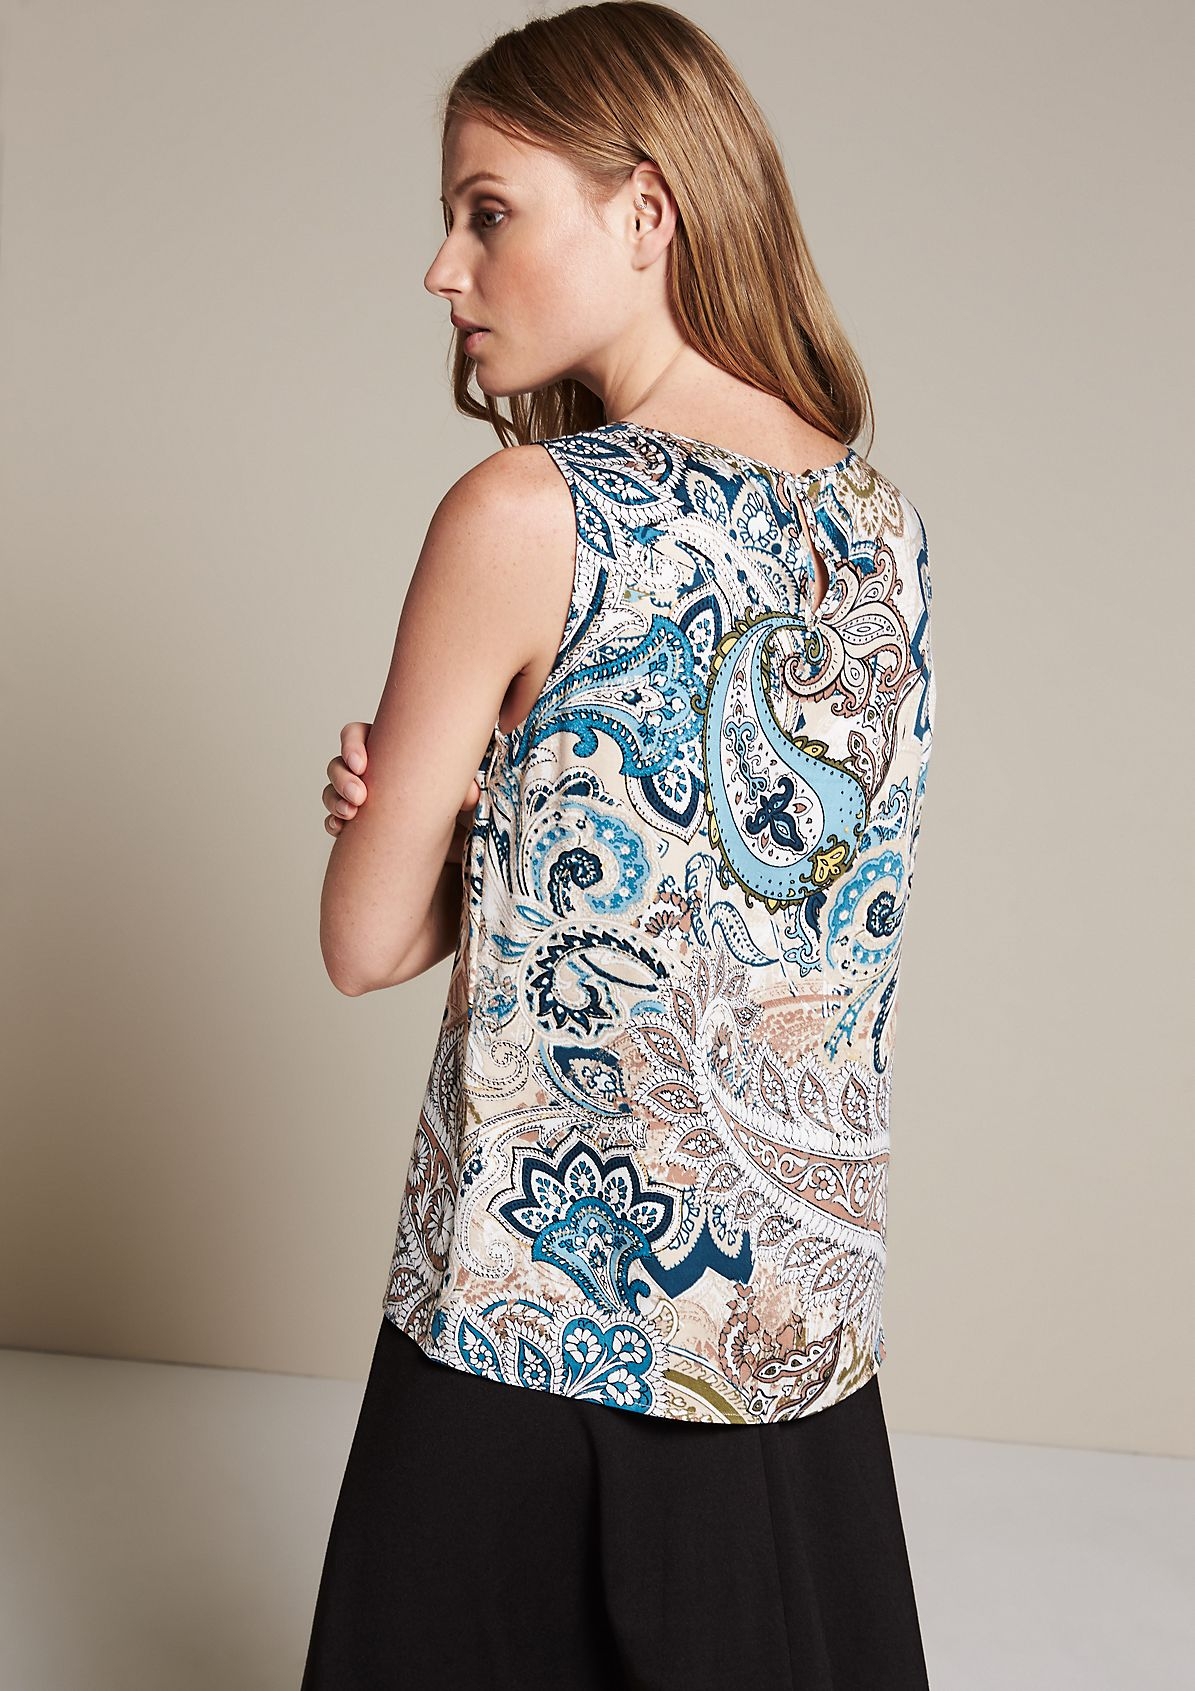 Elegant blouse top with beautiful details from s.Oliver